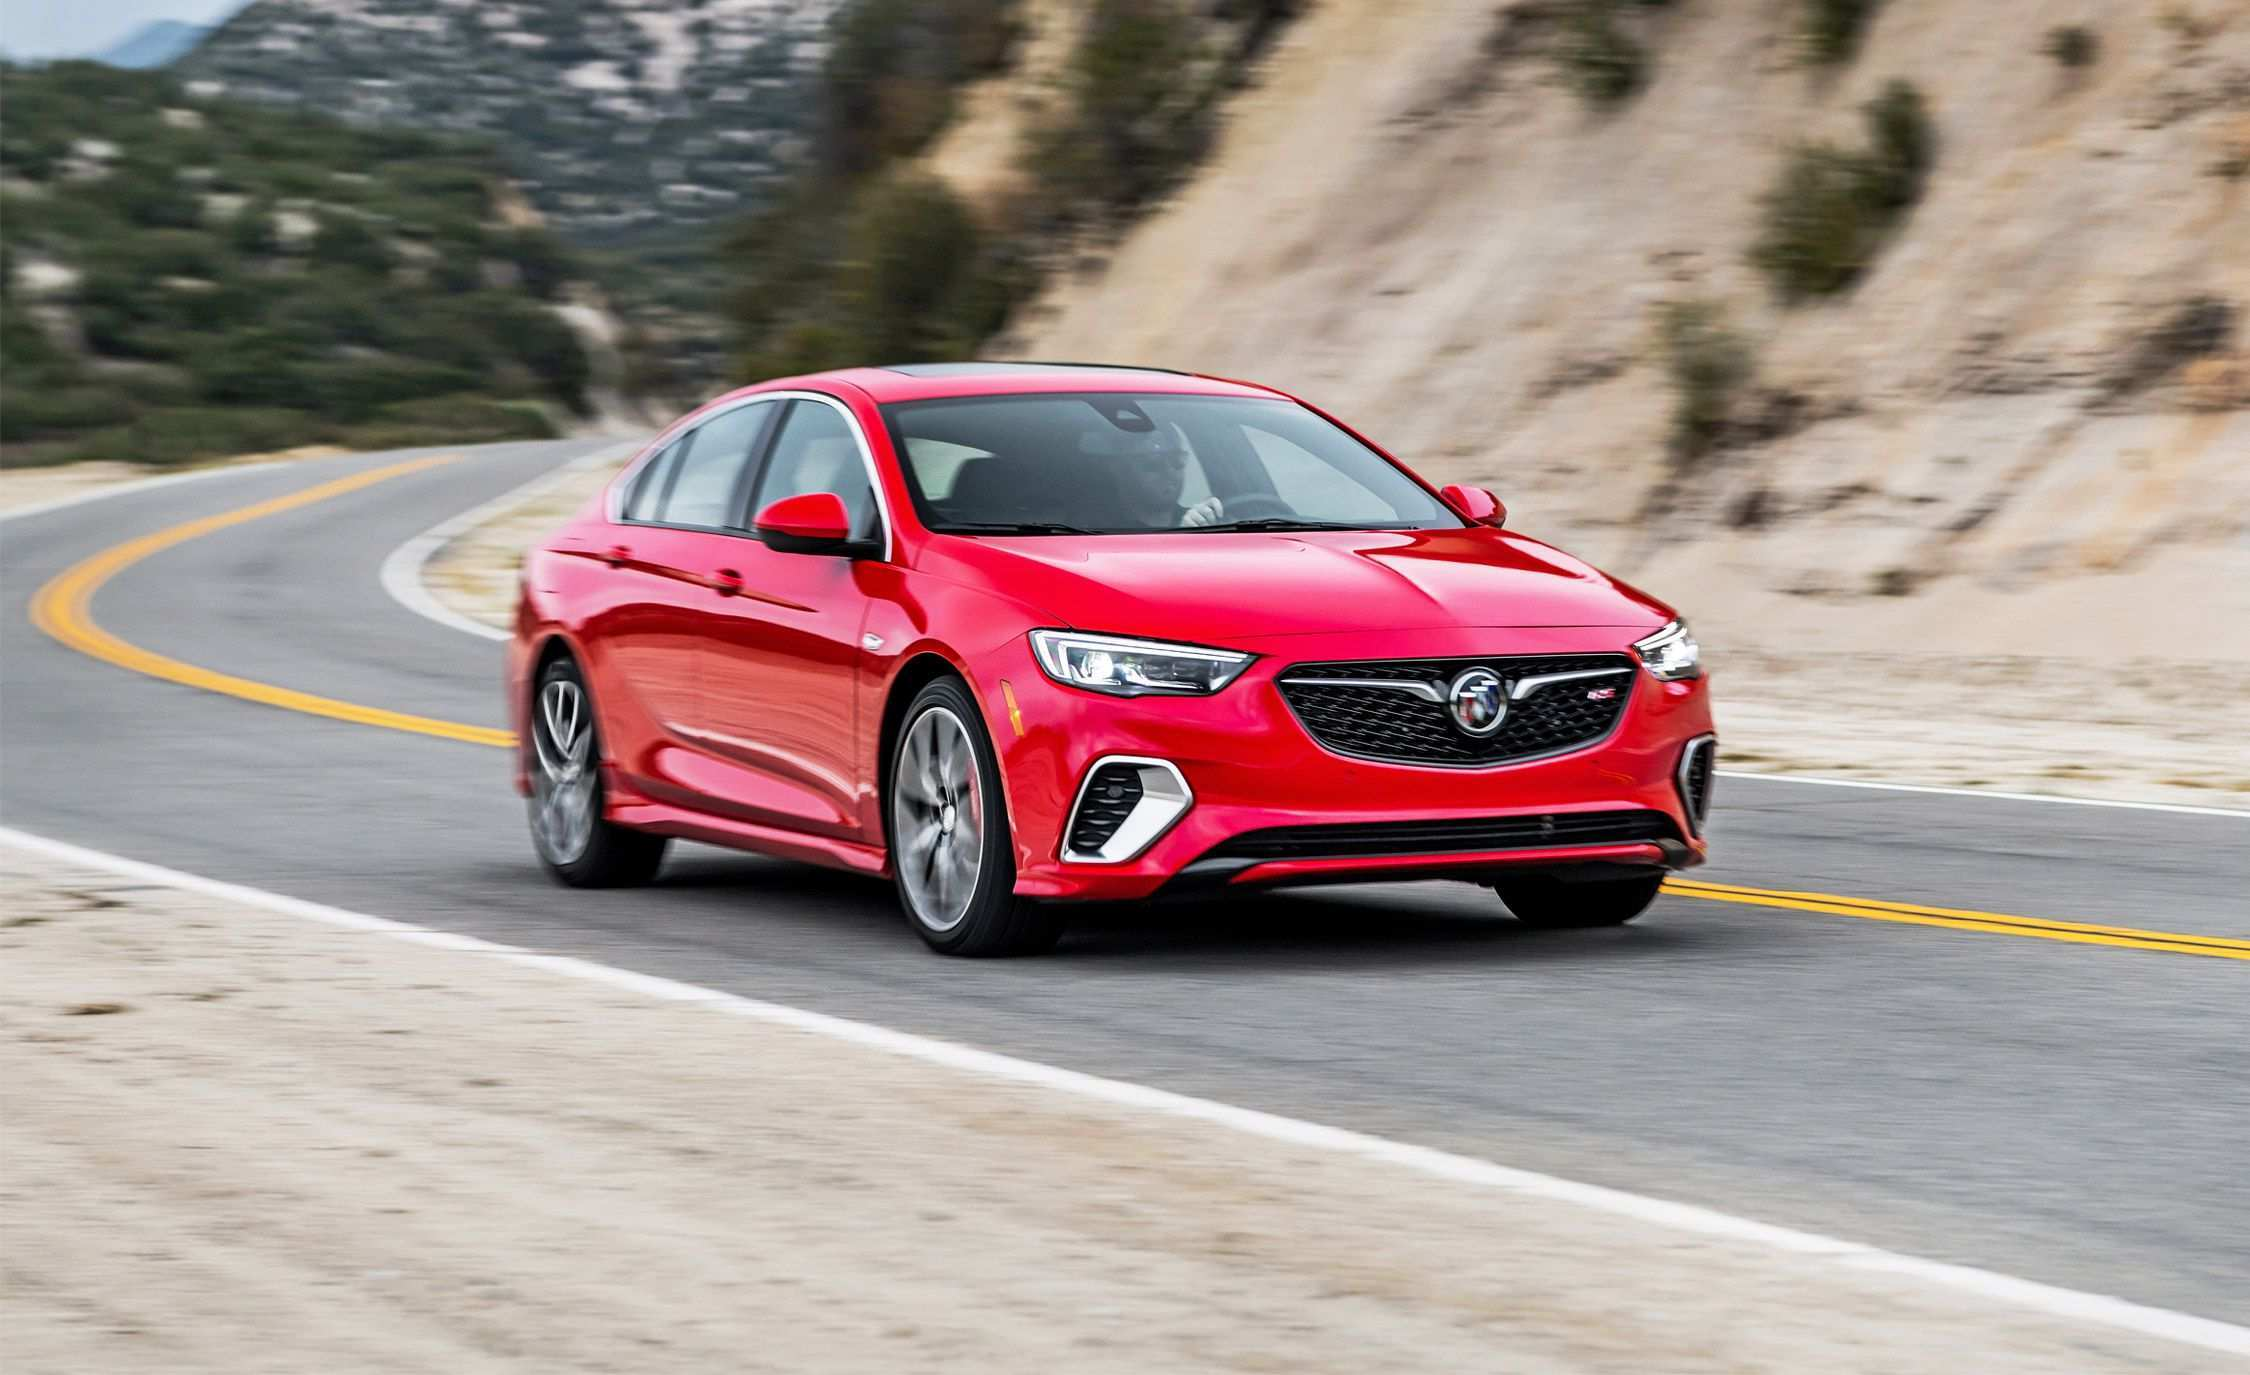 45 The New 2019 Buick Regal Gs Review Specs Performance and New Engine with New 2019 Buick Regal Gs Review Specs